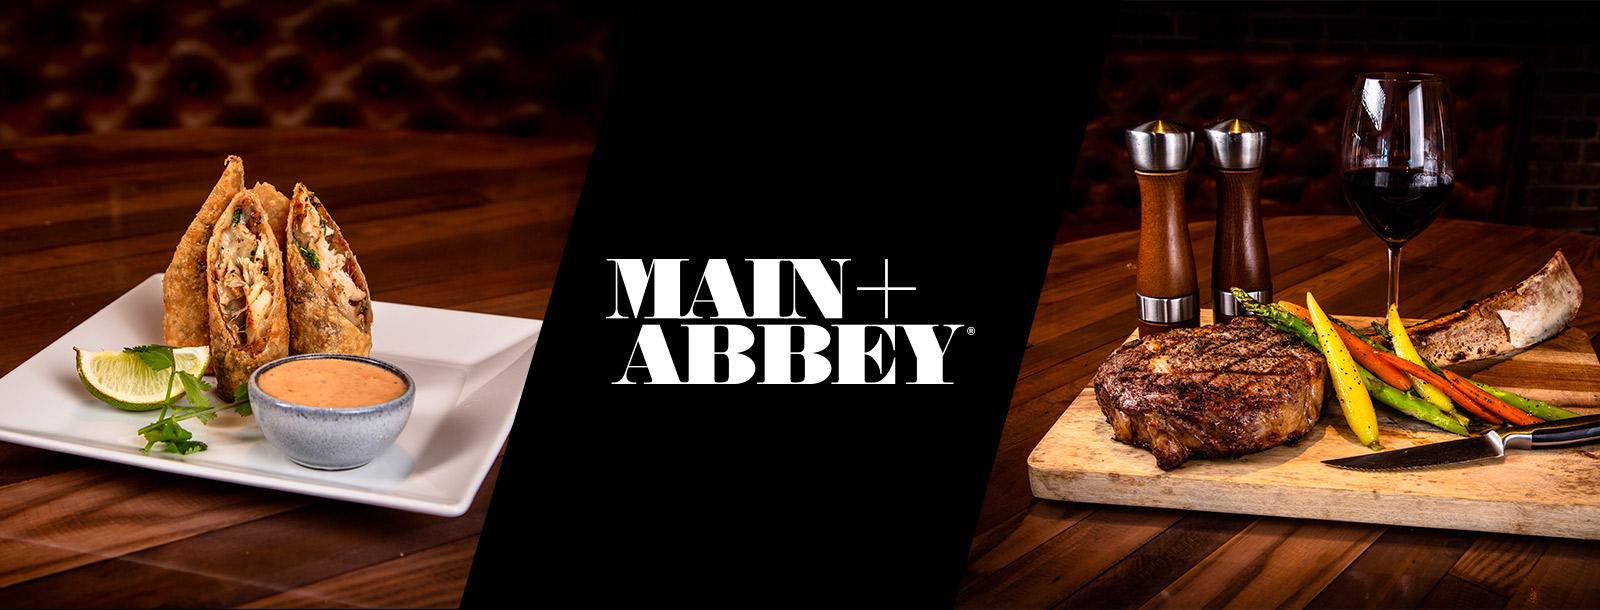 main abbey places to eat sioux city